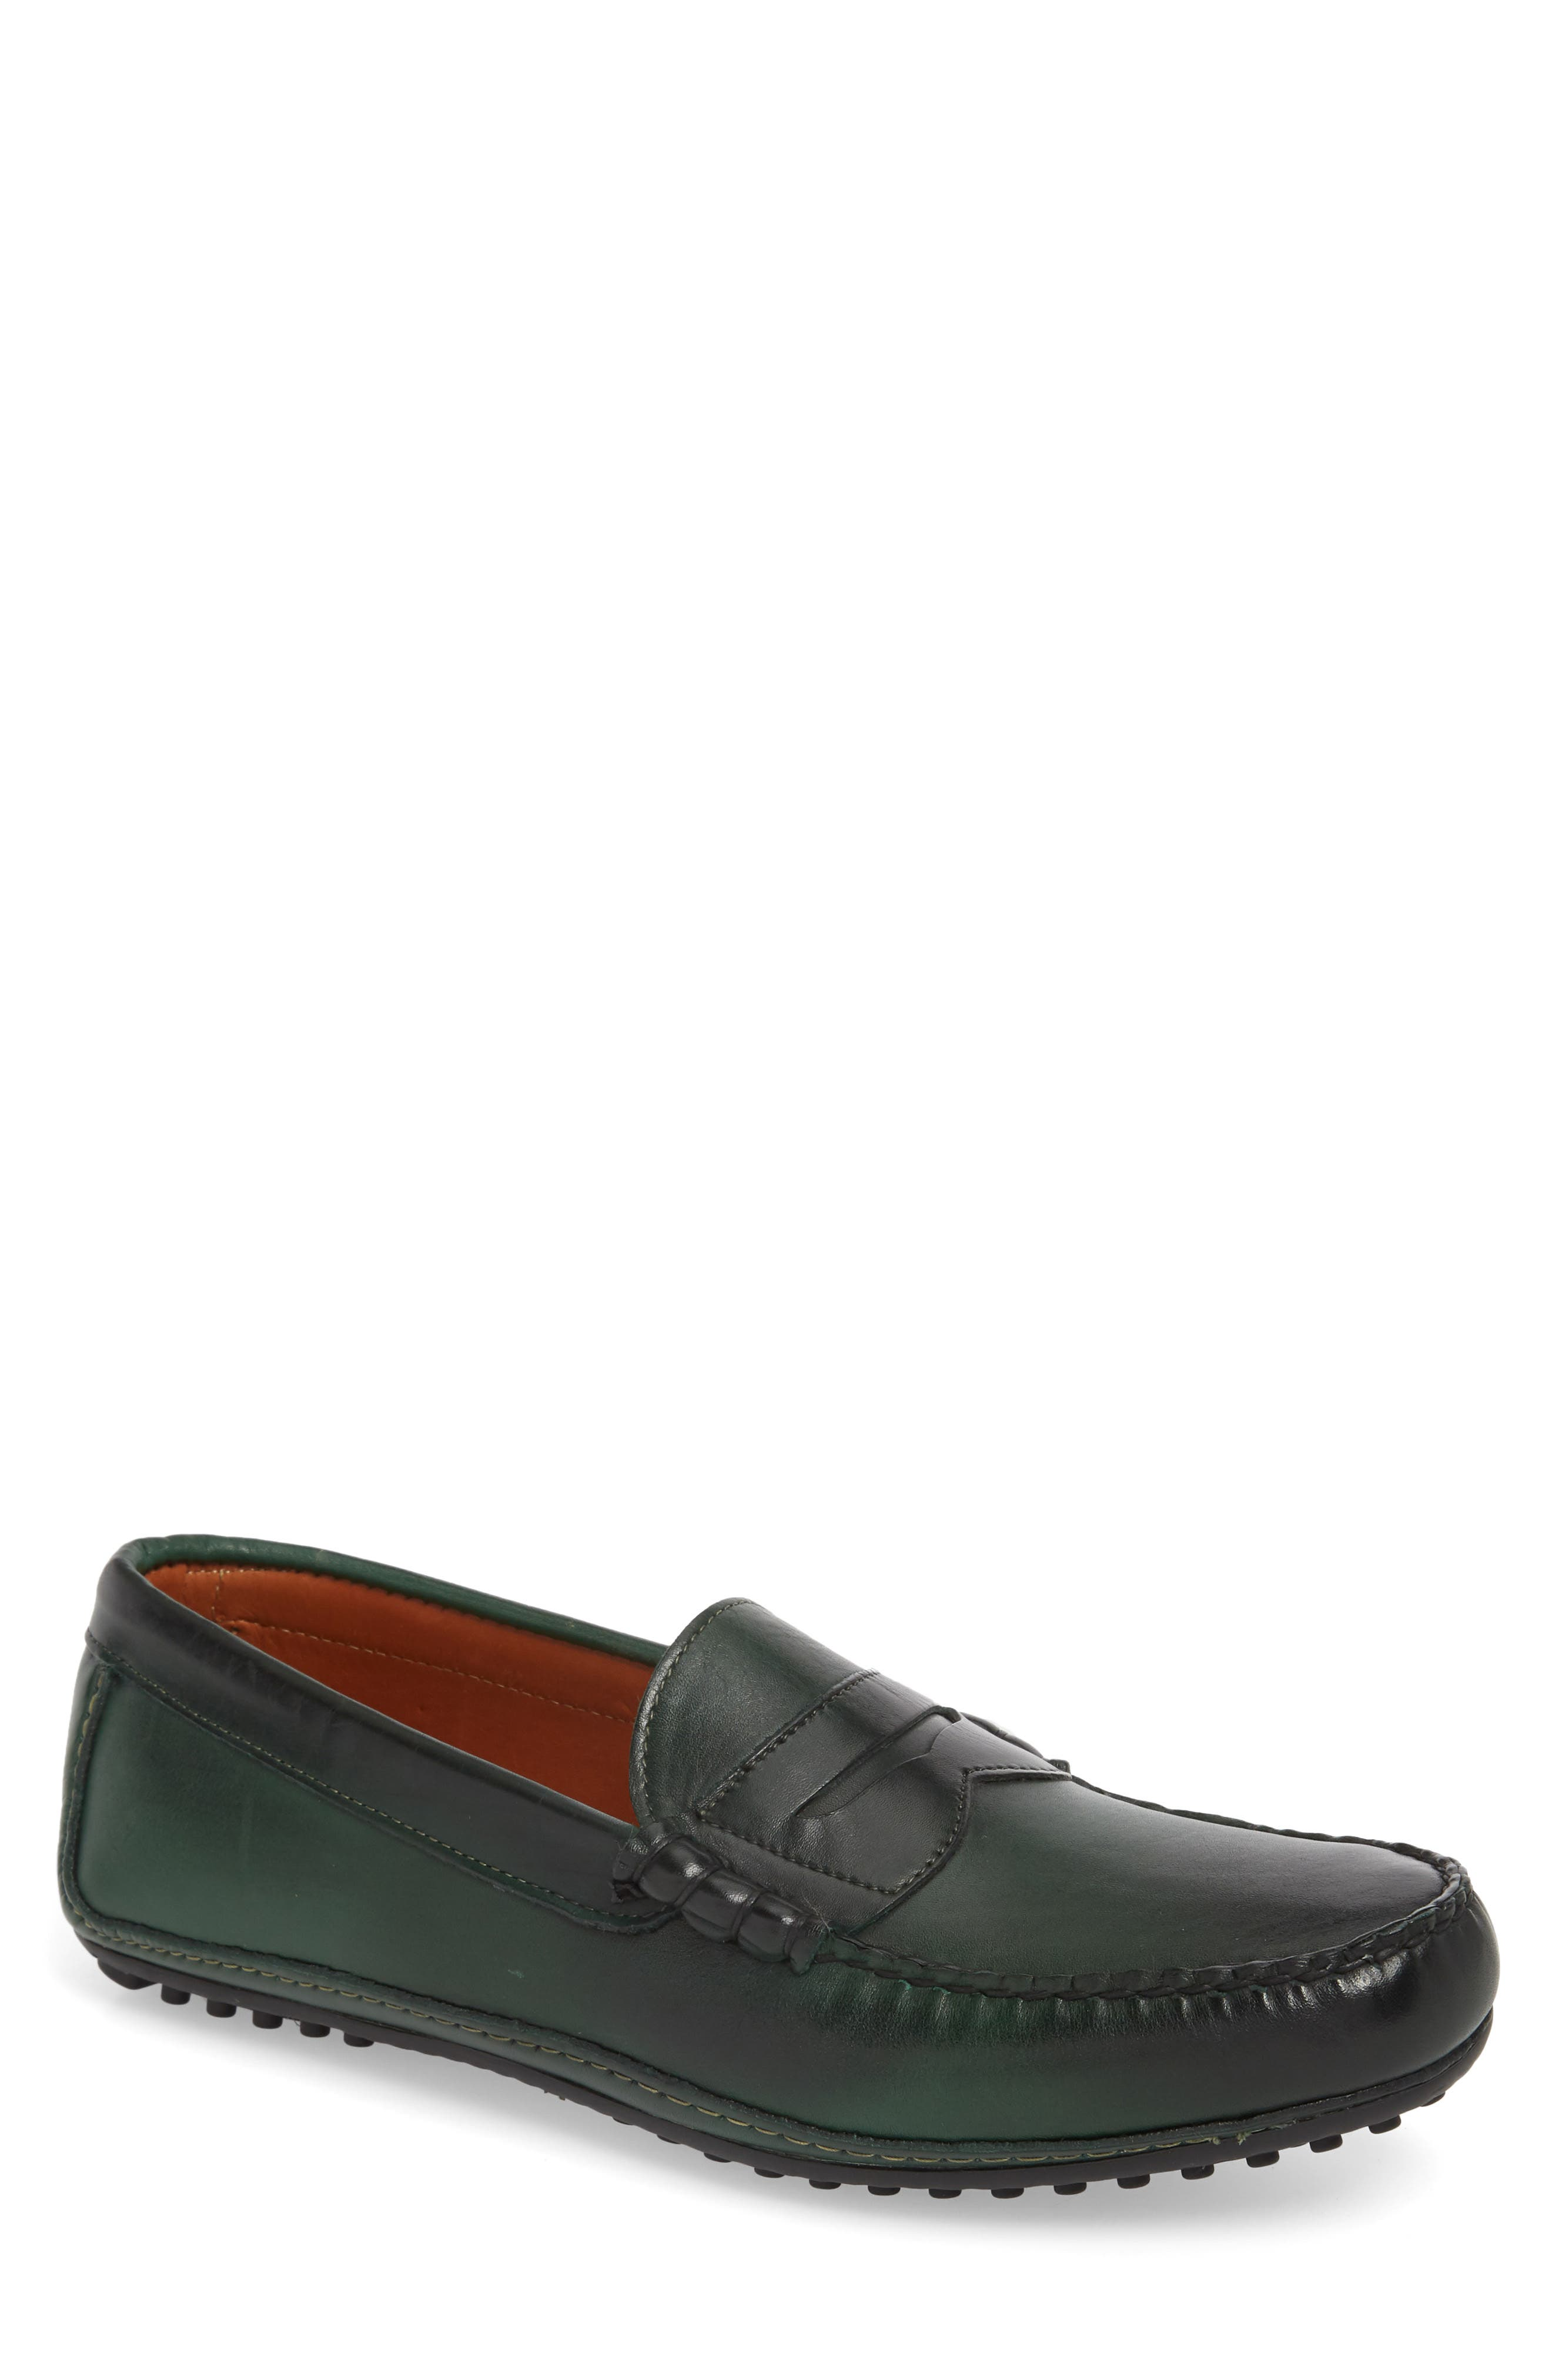 Siesta Key Penny Loafer,                         Main,                         color, GREEN LEATHER